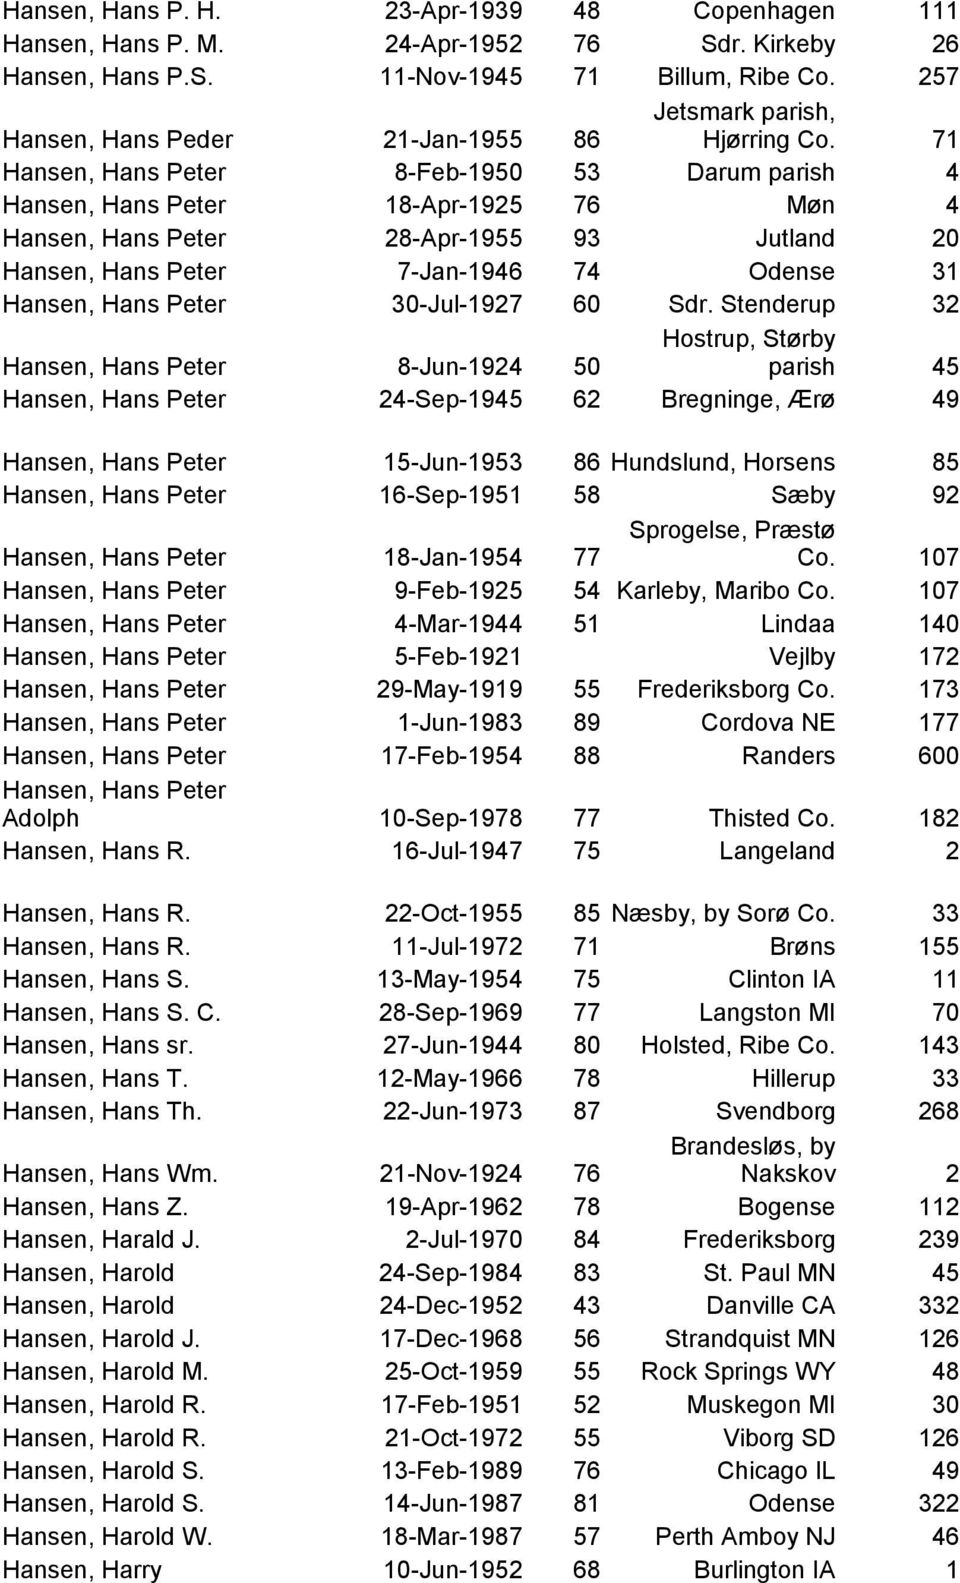 71 Hansen, Hans Peter 8-Feb-1950 53 Darum parish 4 Hansen, Hans Peter 18-Apr-1925 76 Møn 4 Hansen, Hans Peter 28-Apr-1955 93 Jutland 20 Hansen, Hans Peter 7-Jan-1946 74 Odense 31 Hansen, Hans Peter